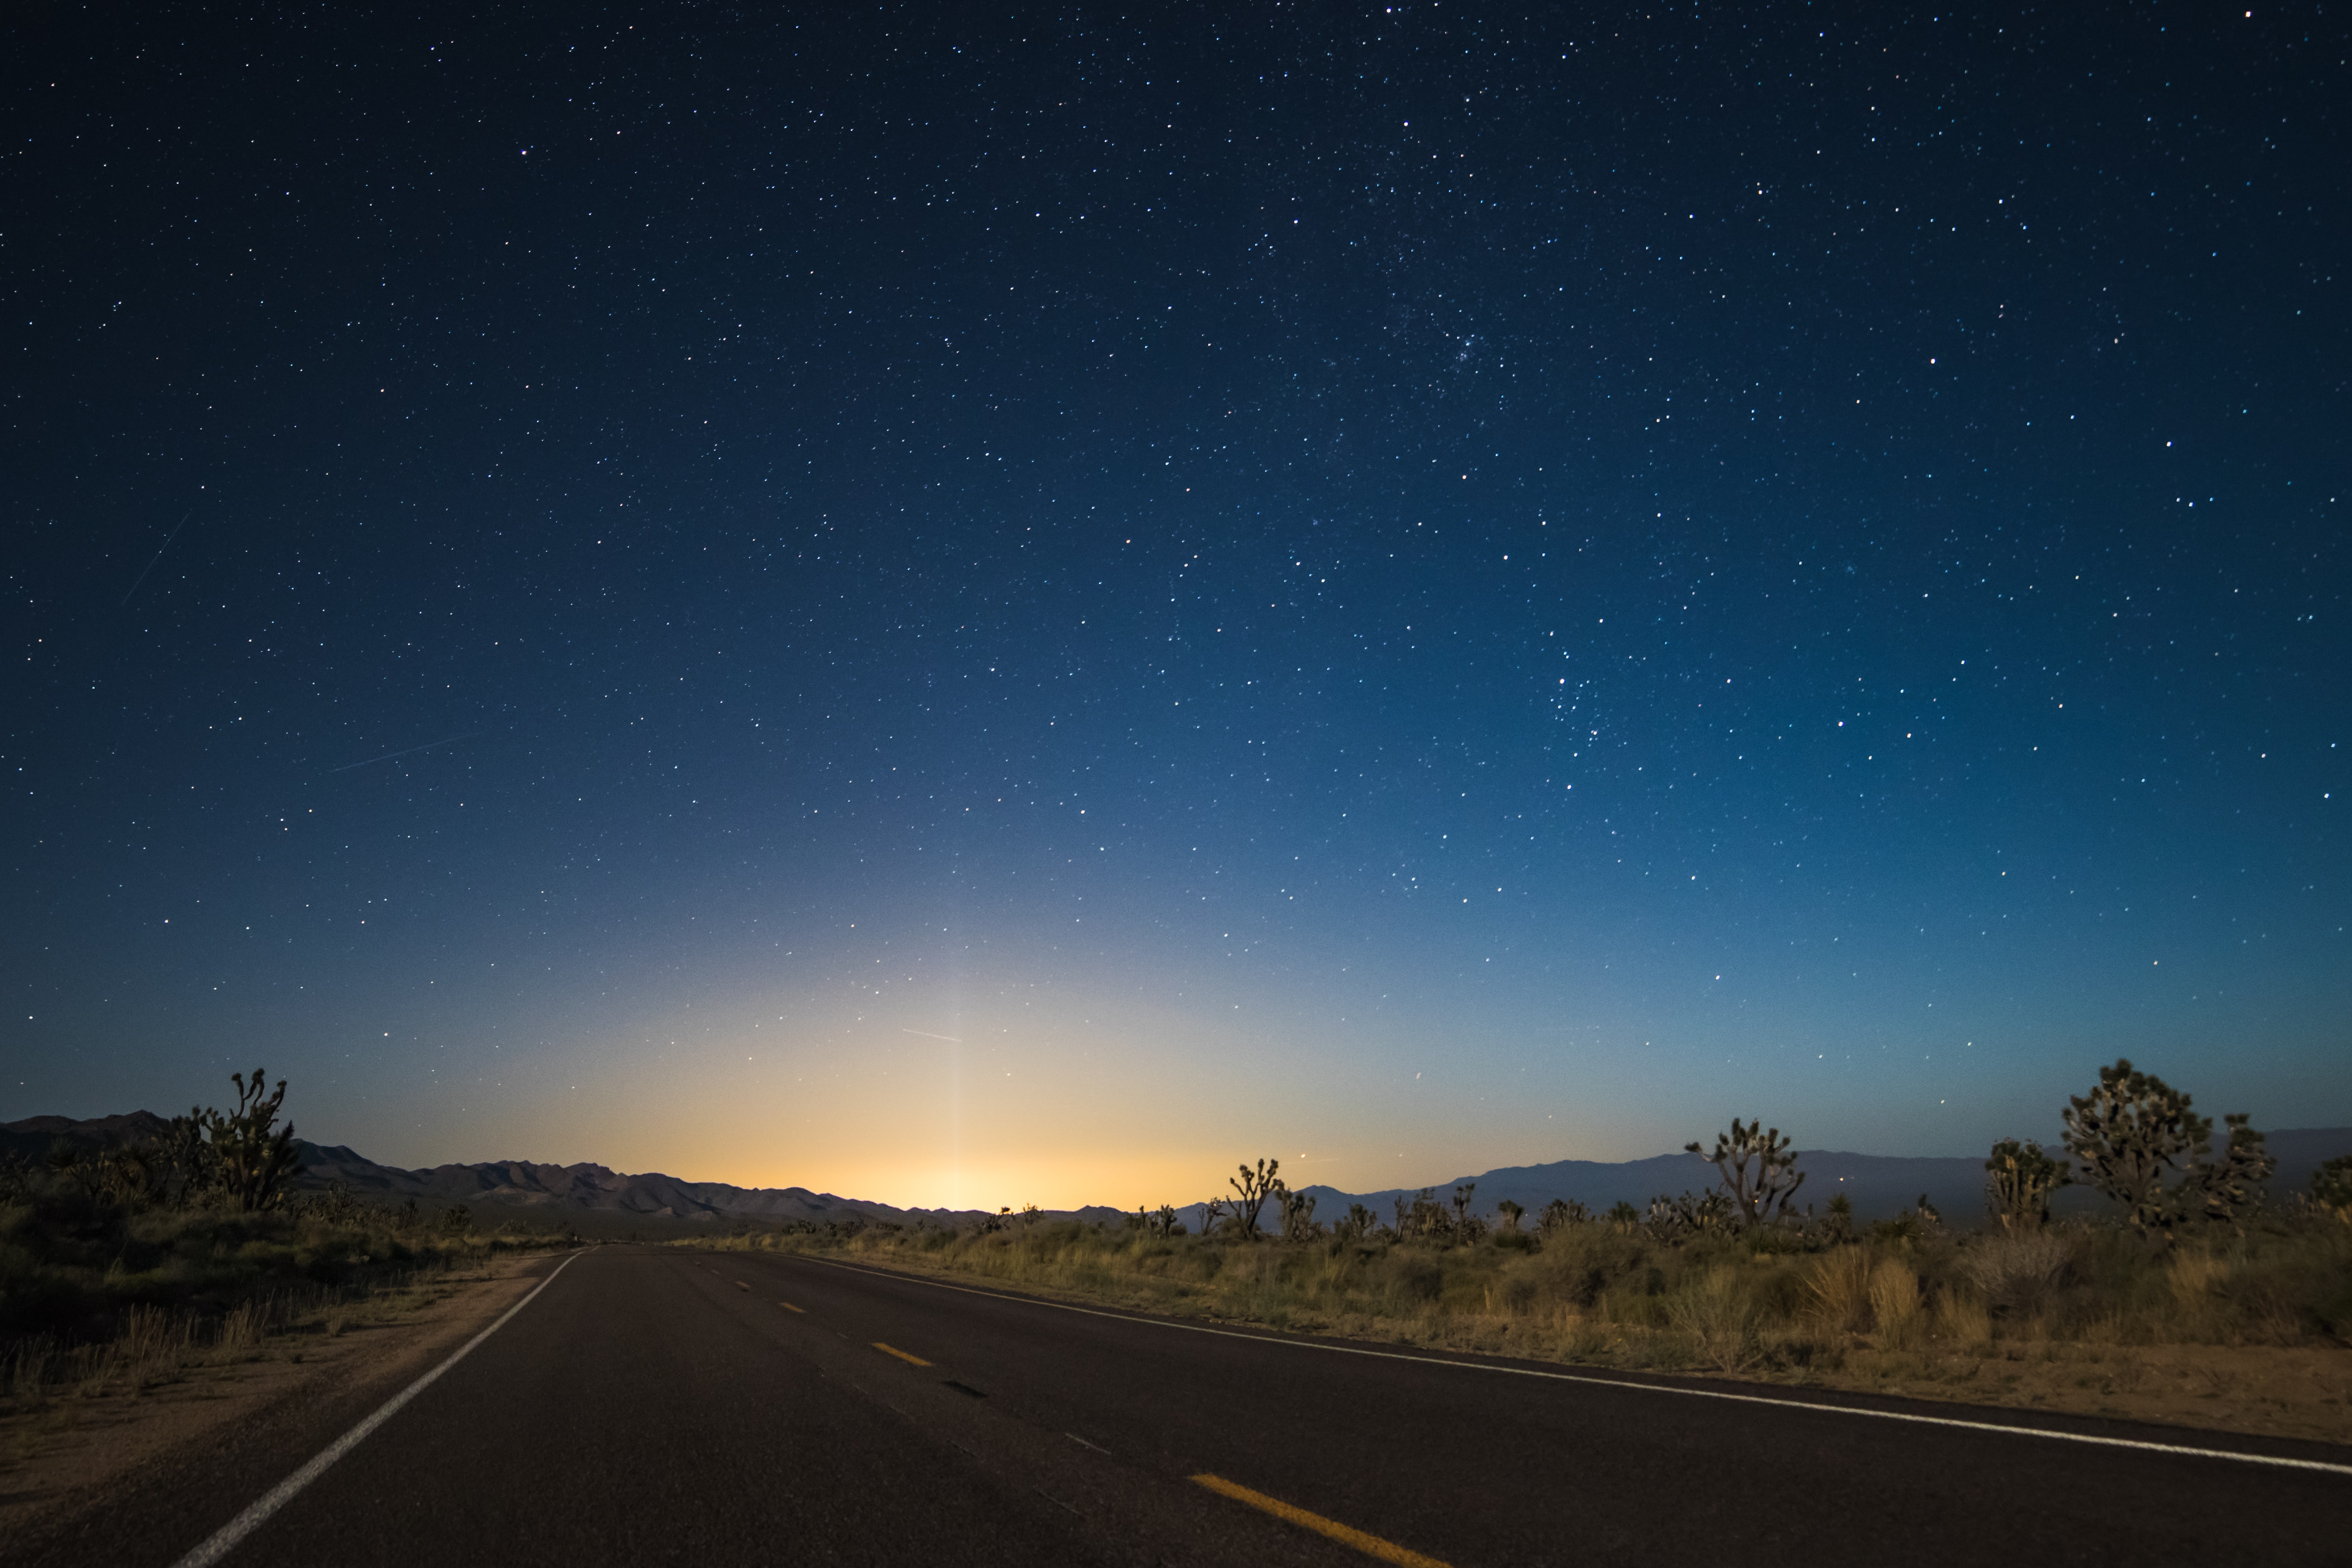 The pavement in the center of desert area leads to glowing sunrise illuminating night sky